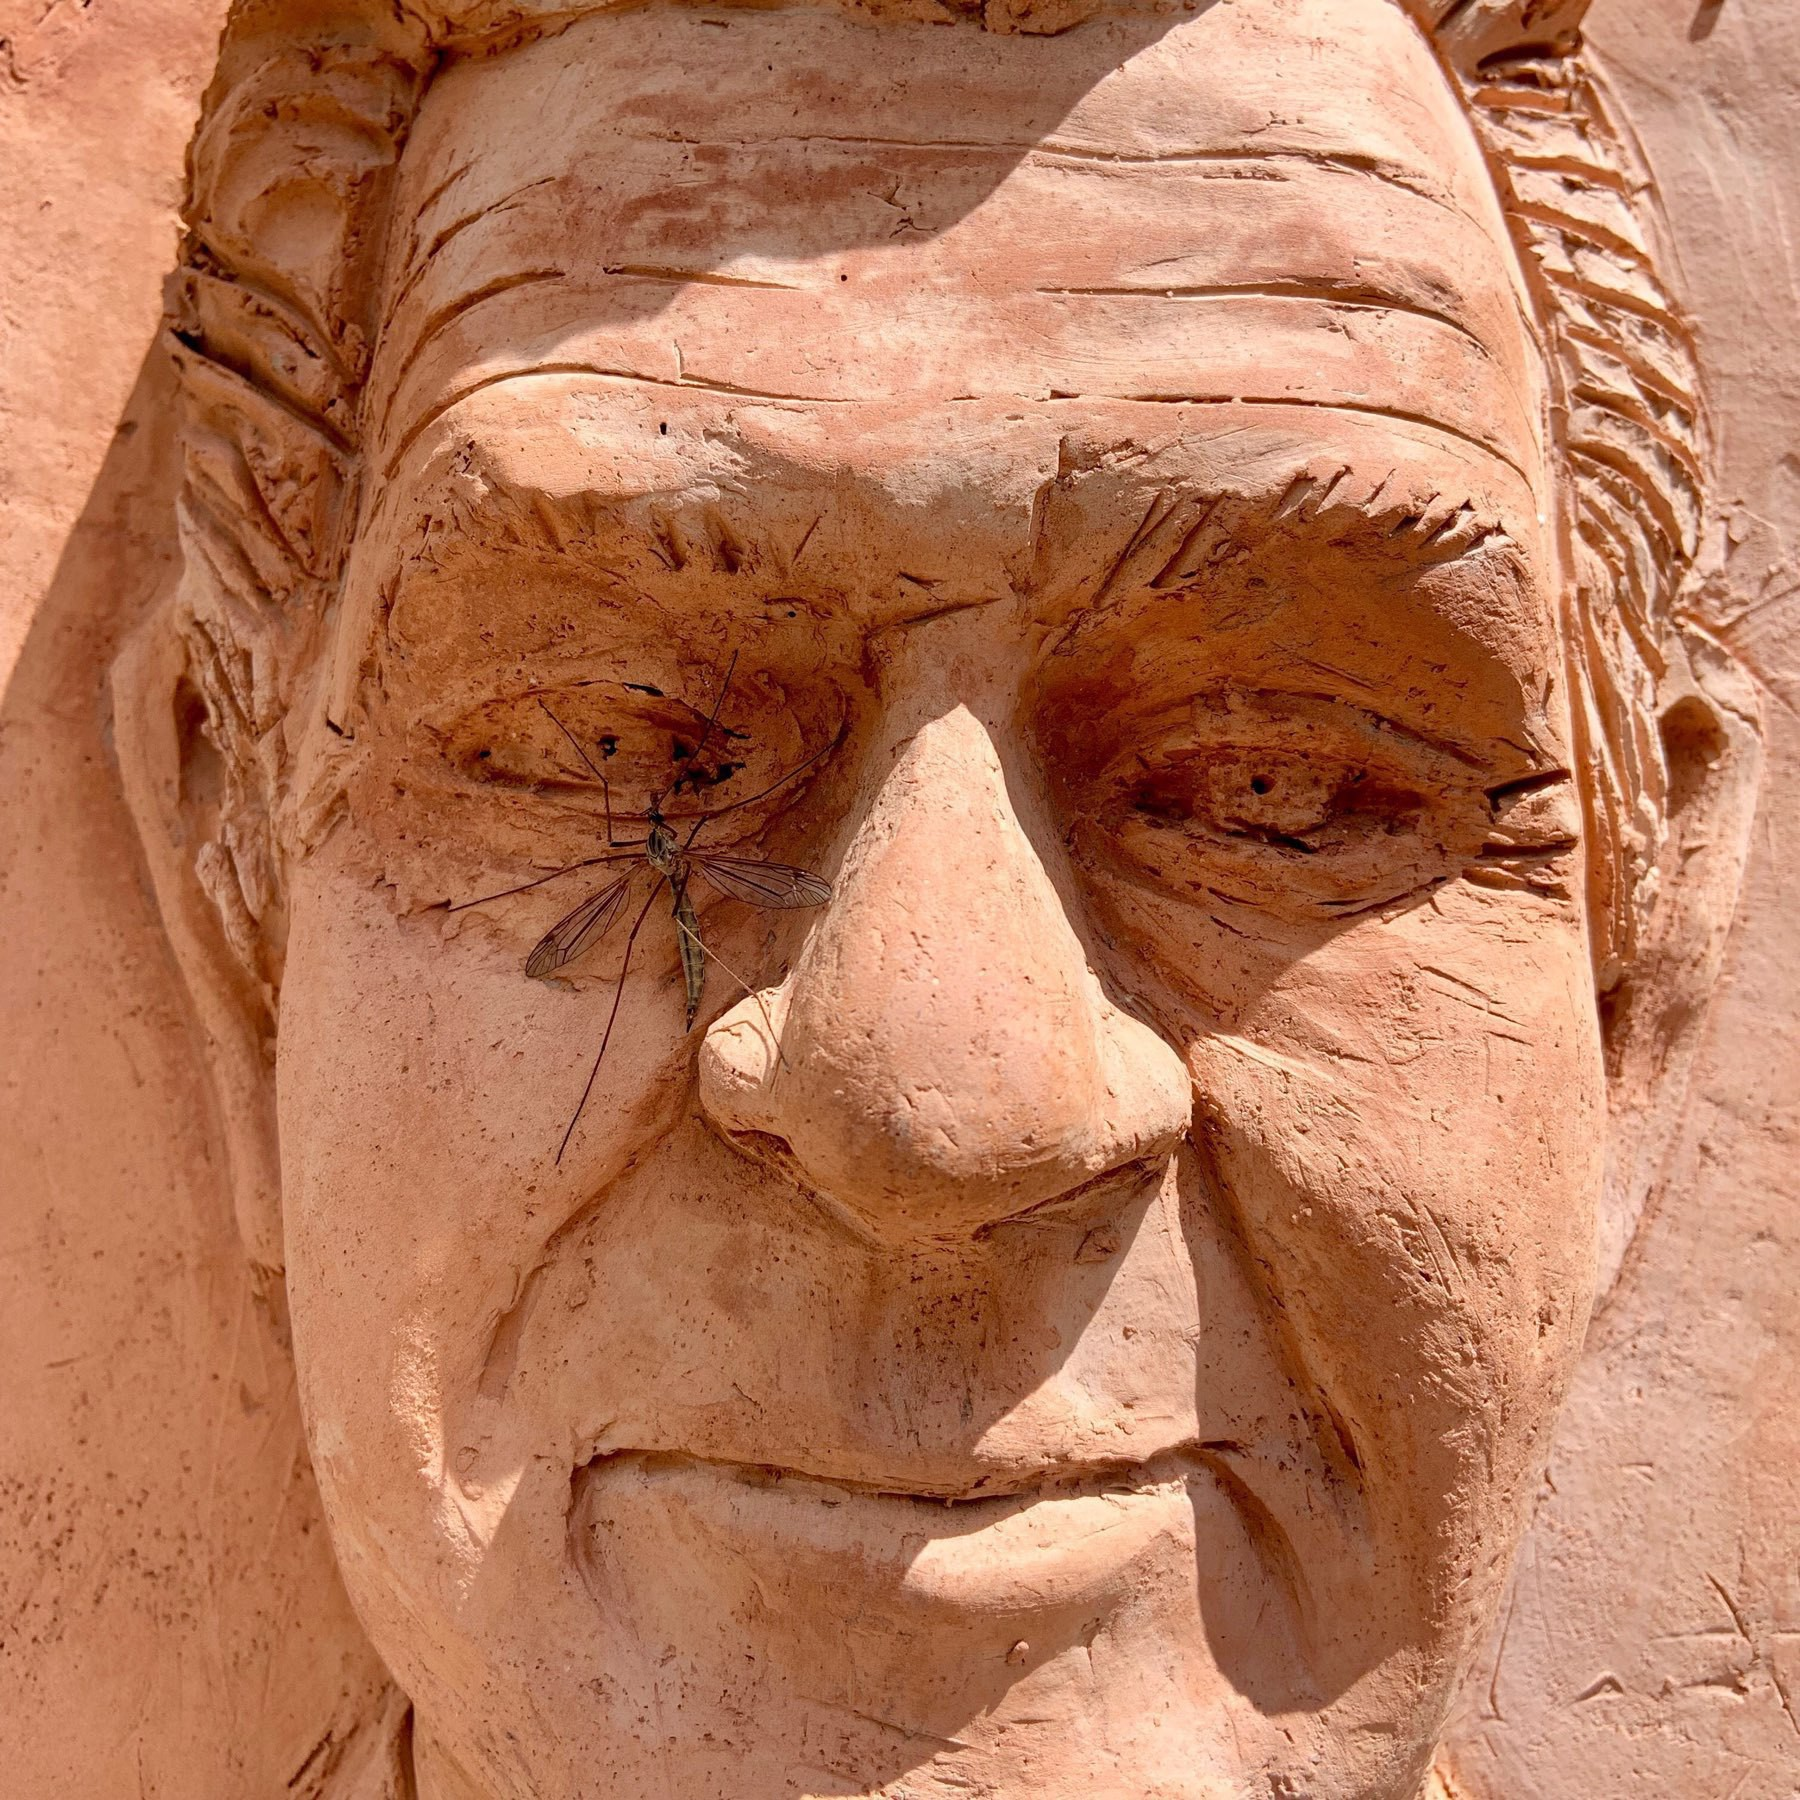 Crane fly on a sculpture of an older man's face